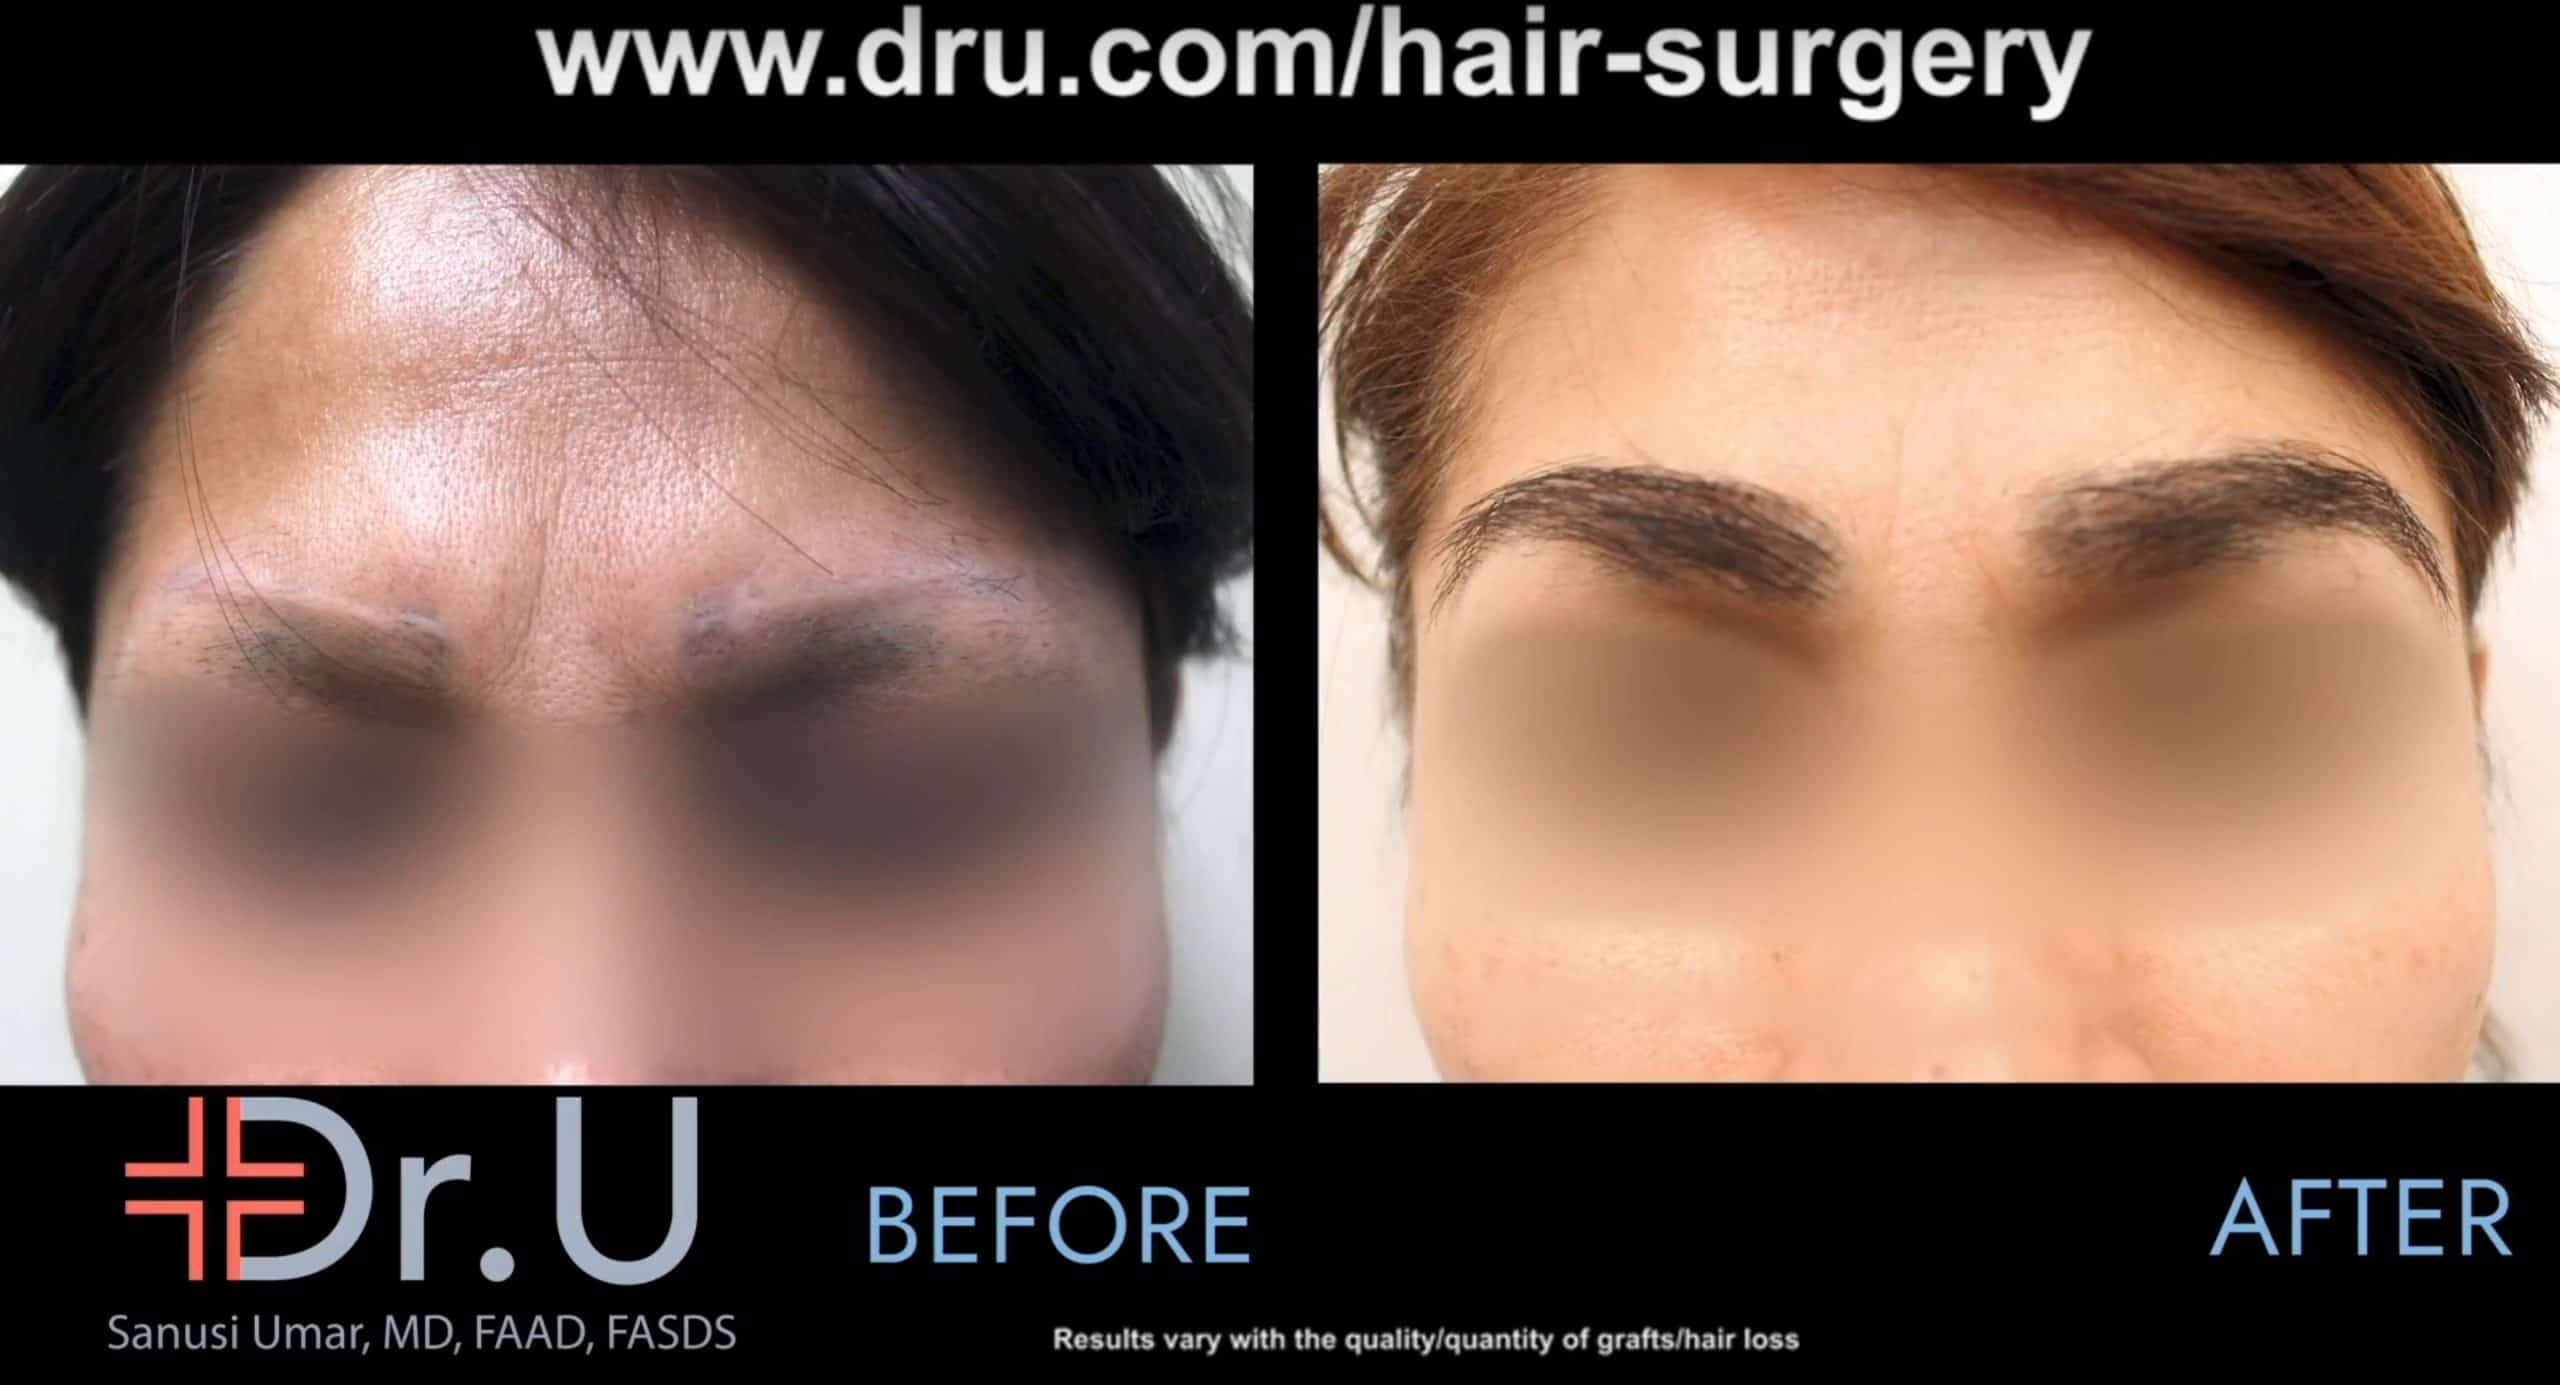 A Los Angeles patient before and after her eyebrow repair that corrected eyebrow discoloration and scarring.